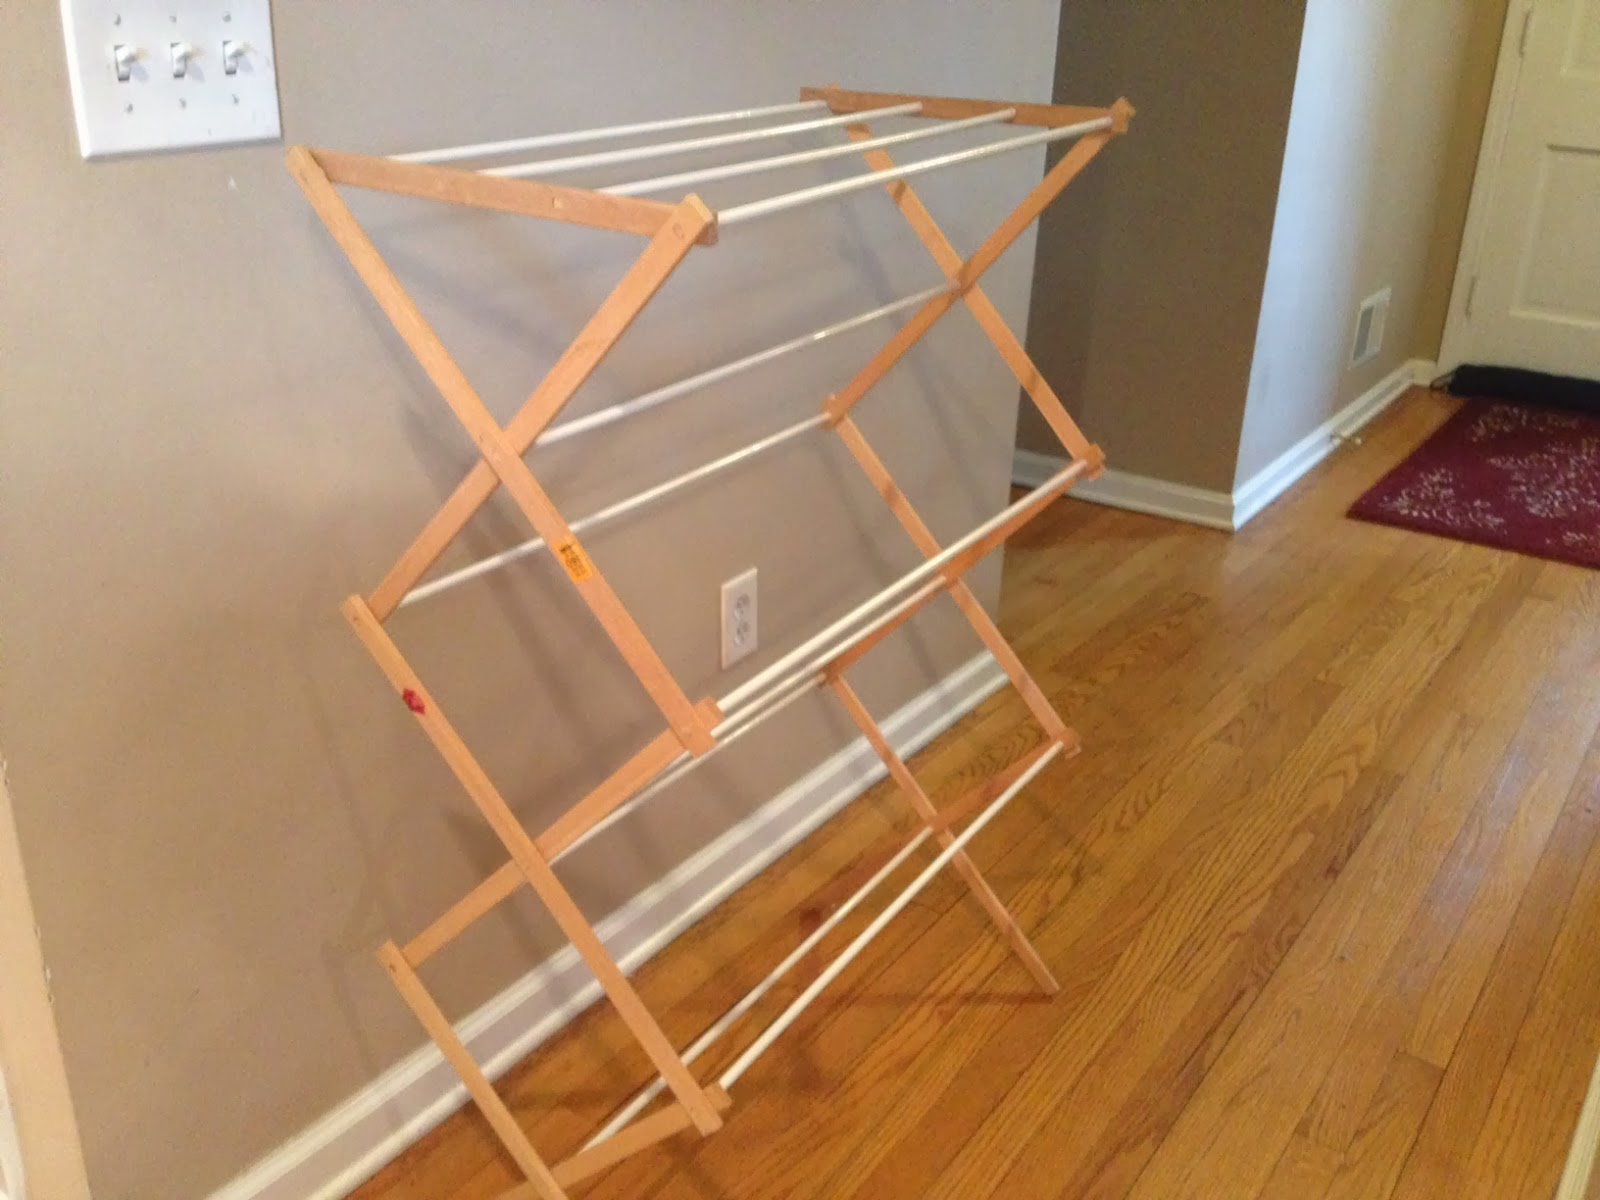 Two it yourself diy laundry drying rack wall mount from floor two it yourself diy laundry drying rack wall mount from floor standing solutioingenieria Choice Image